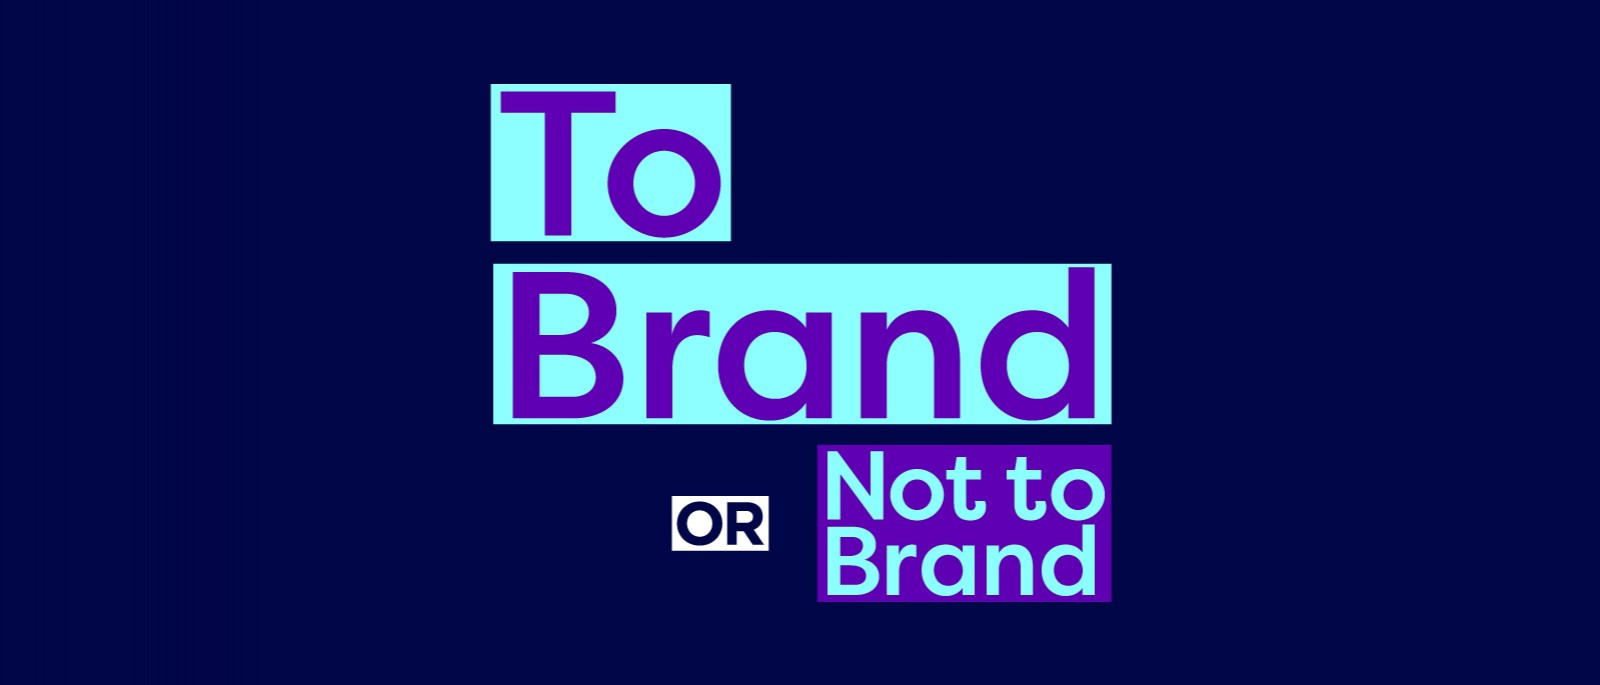 To Brand Or Not To Brand, That Is The Question?